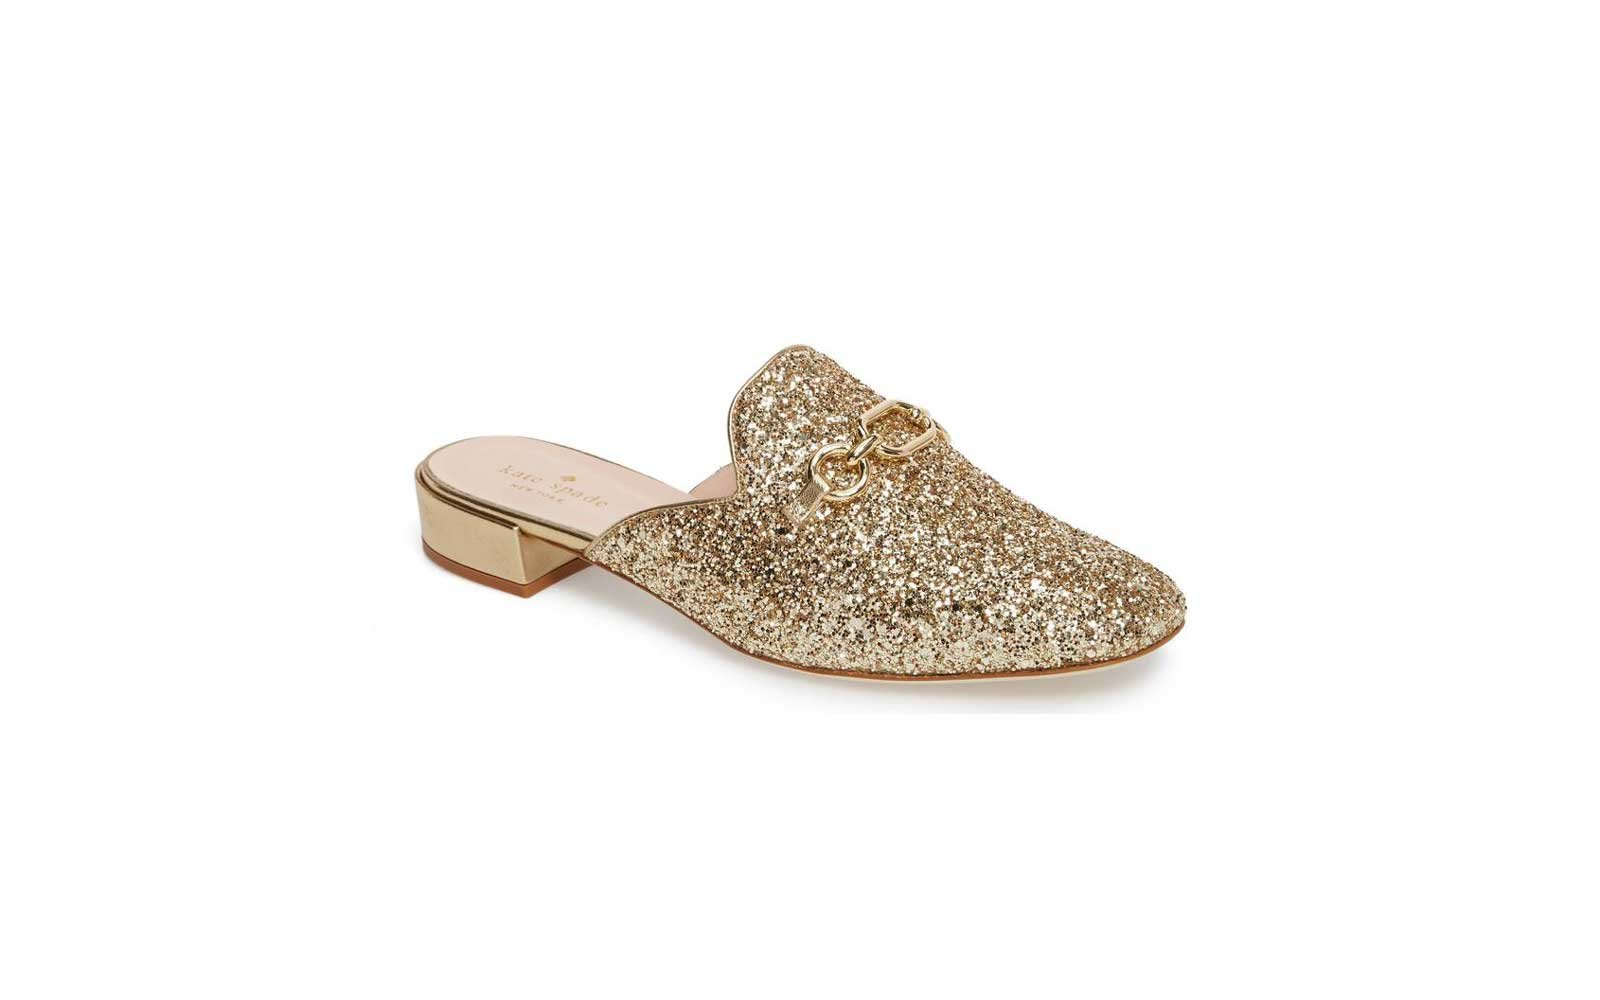 Kate Spade New York Glendi Mule in Gold